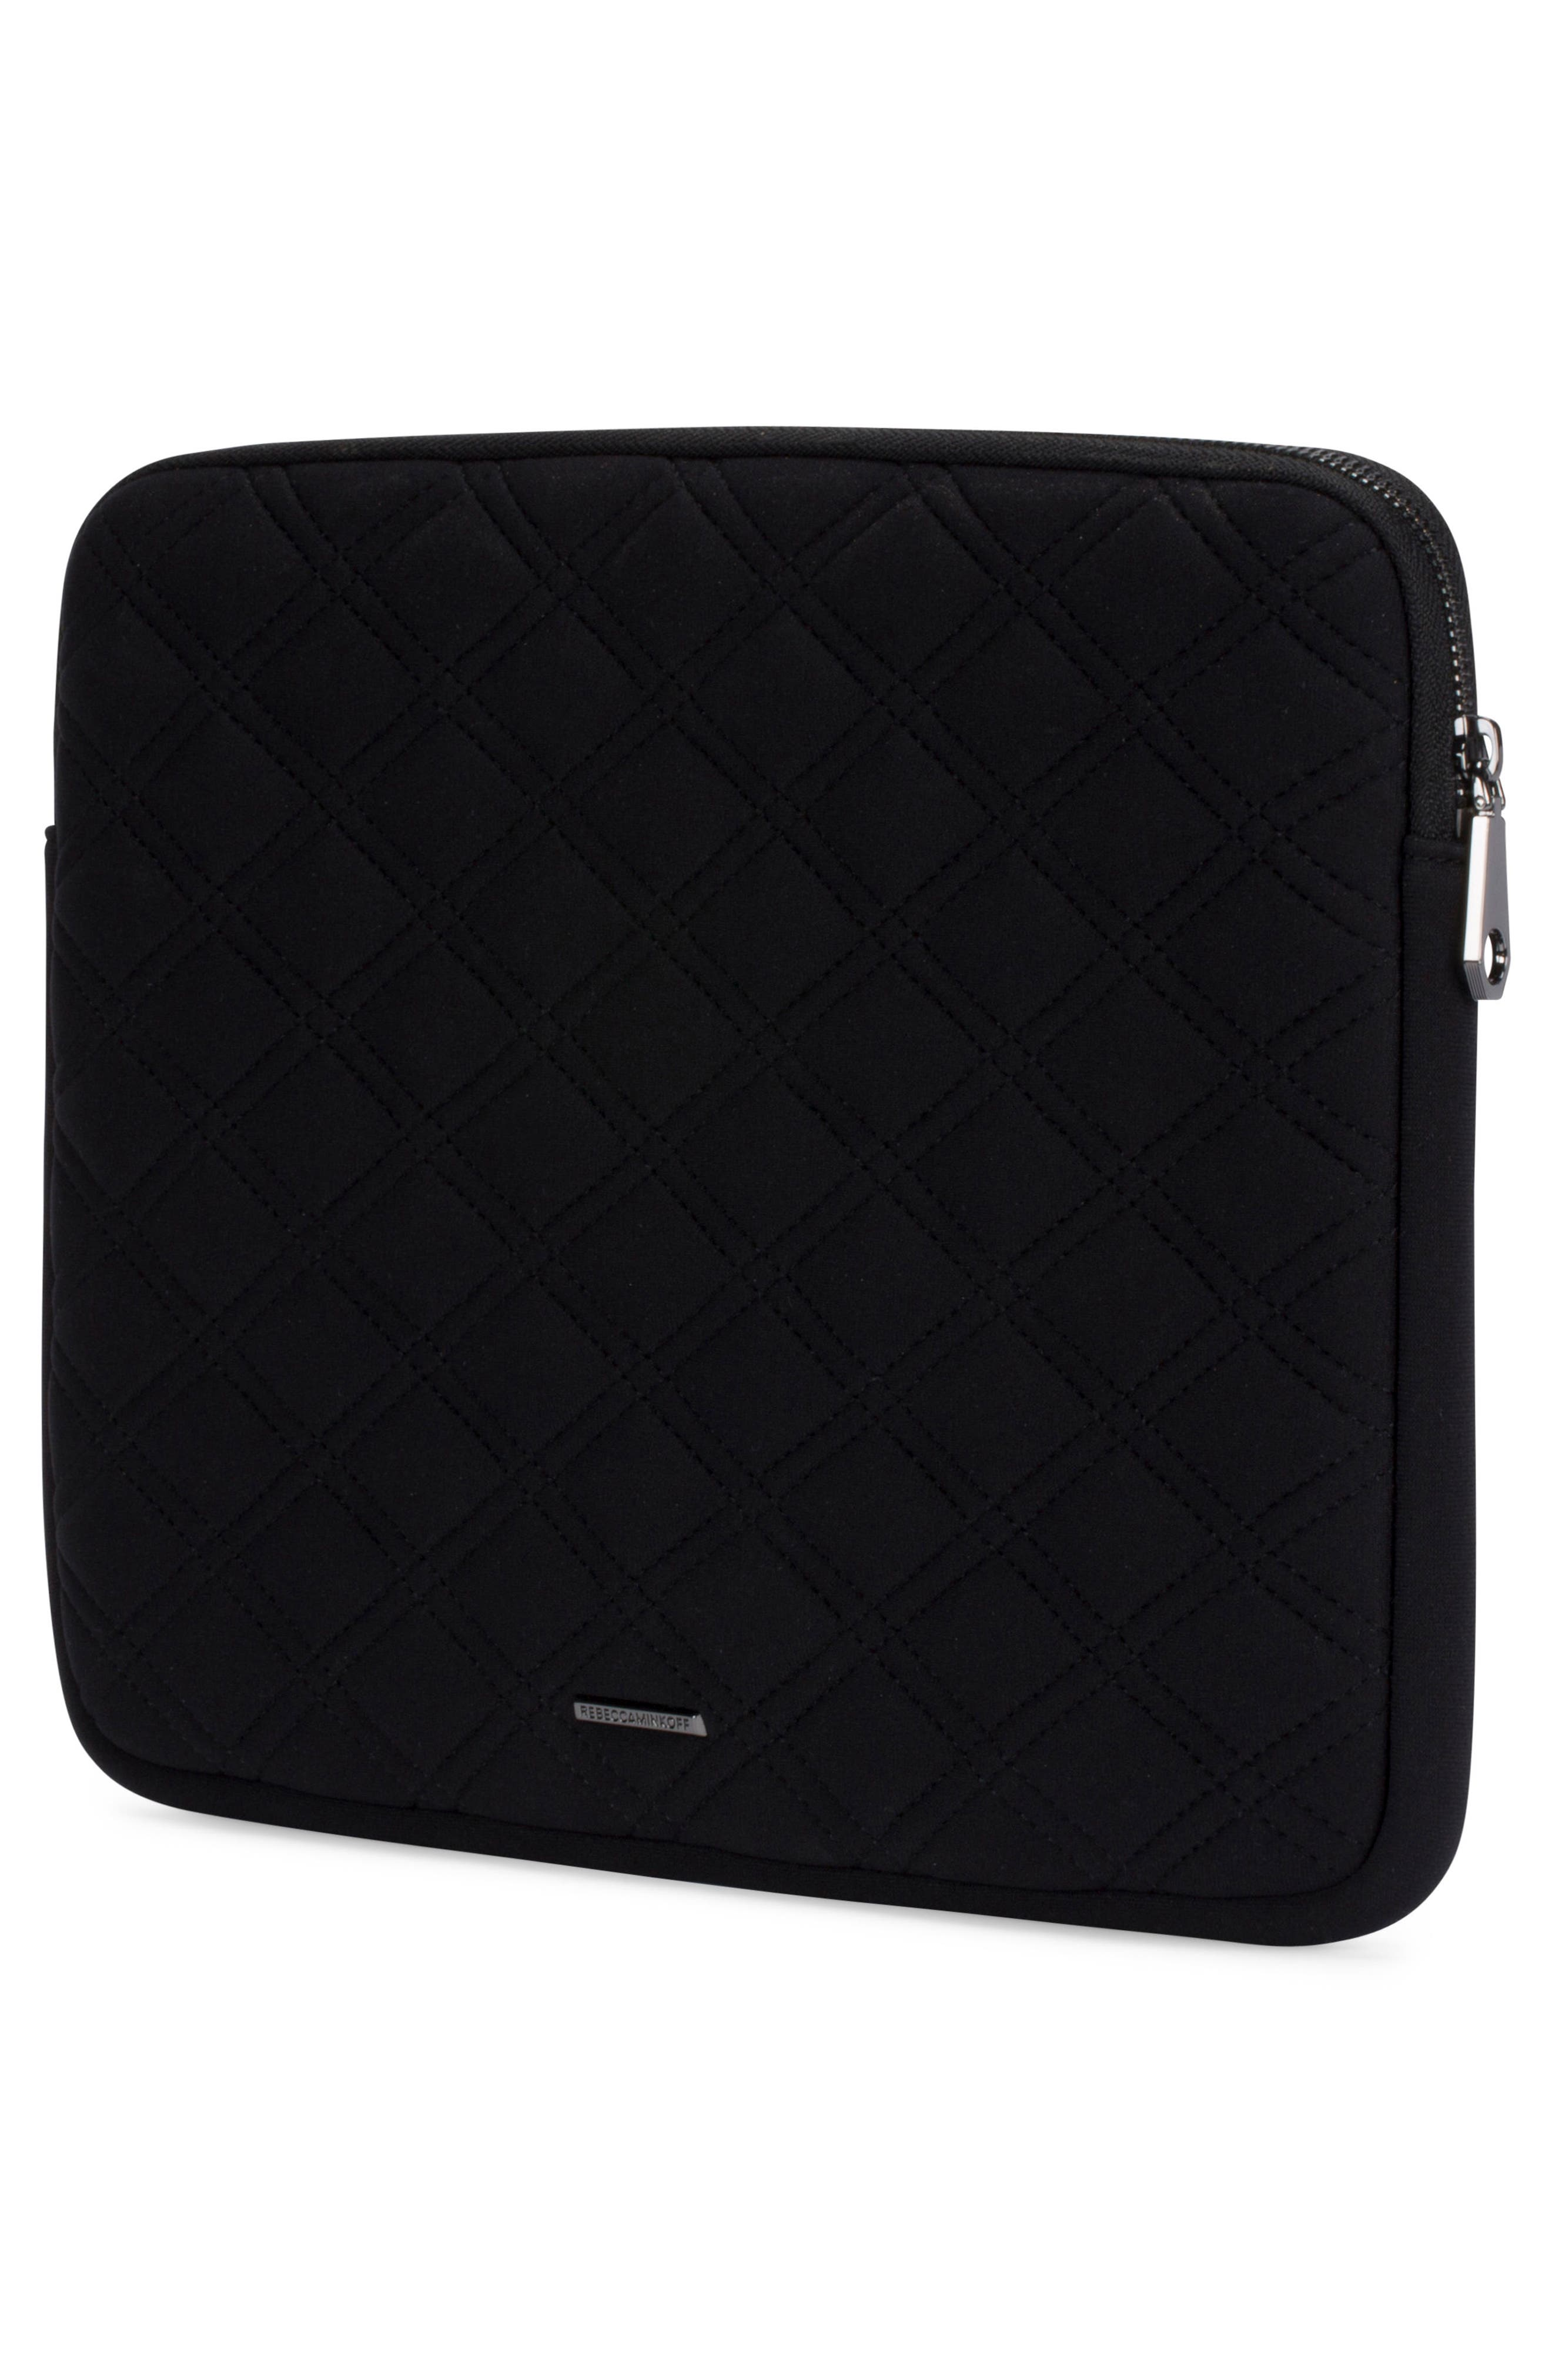 Quilted Stud Laptop Case,                             Alternate thumbnail 2, color,                             Black/ Black Pearl Studs